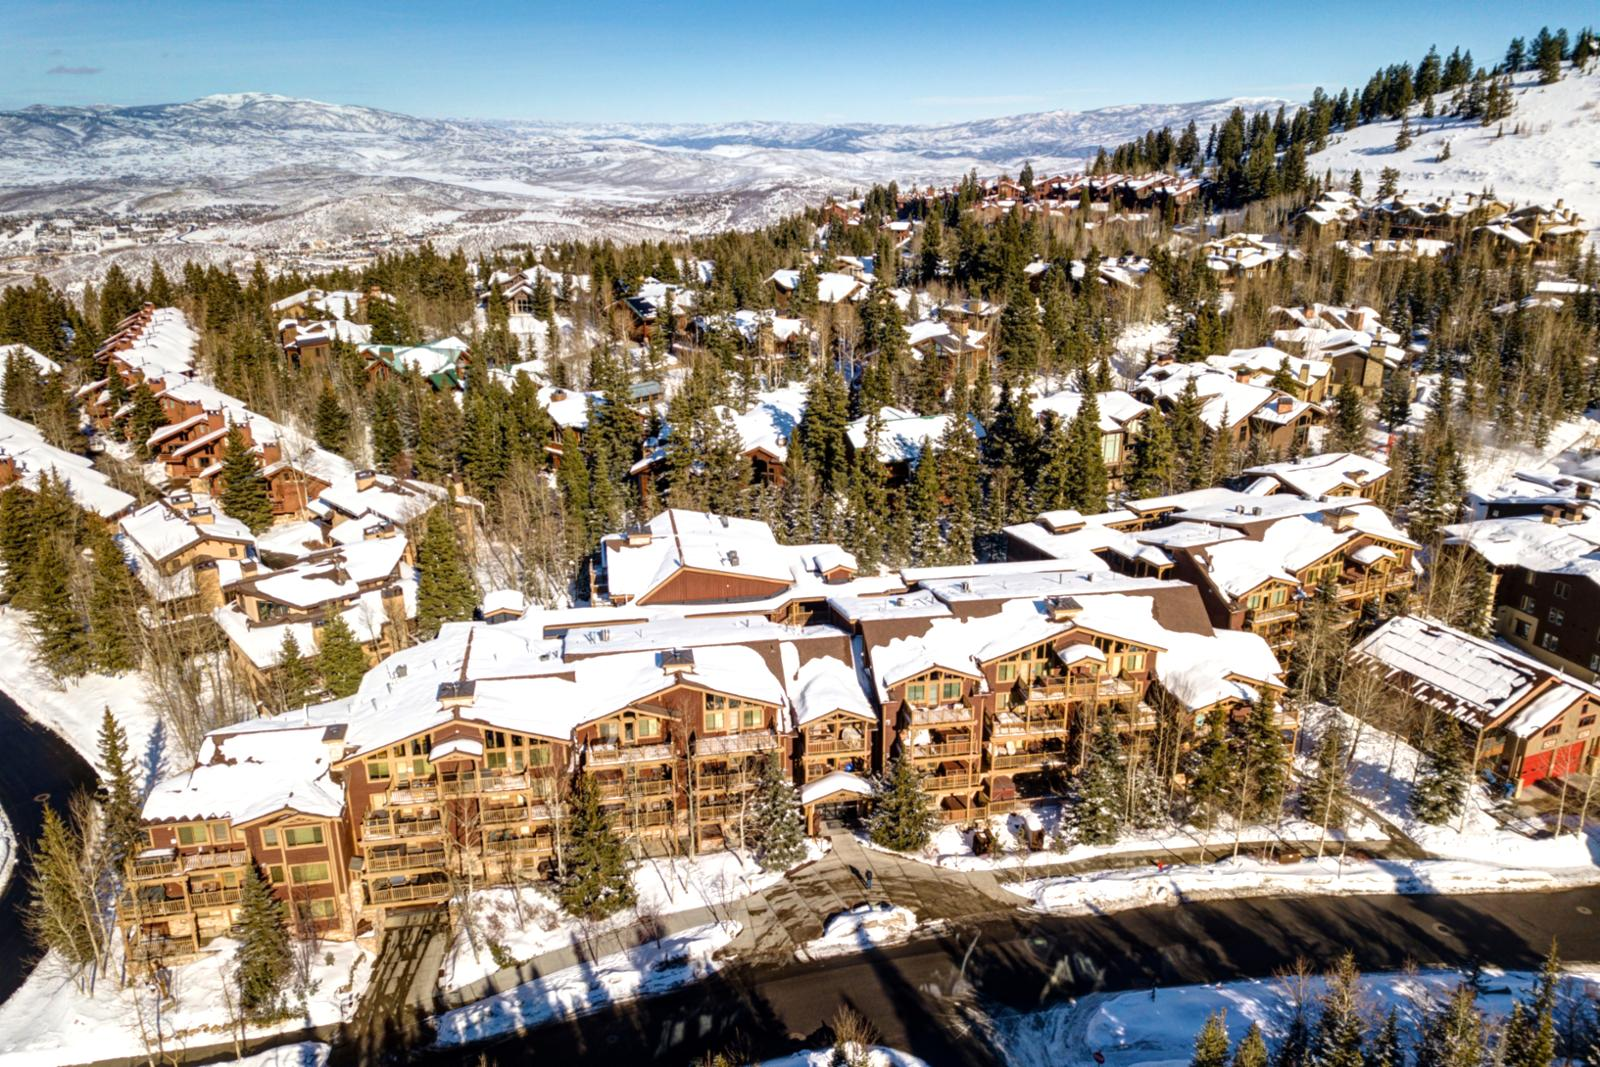 A birds eye view of the Black Bear Lodge